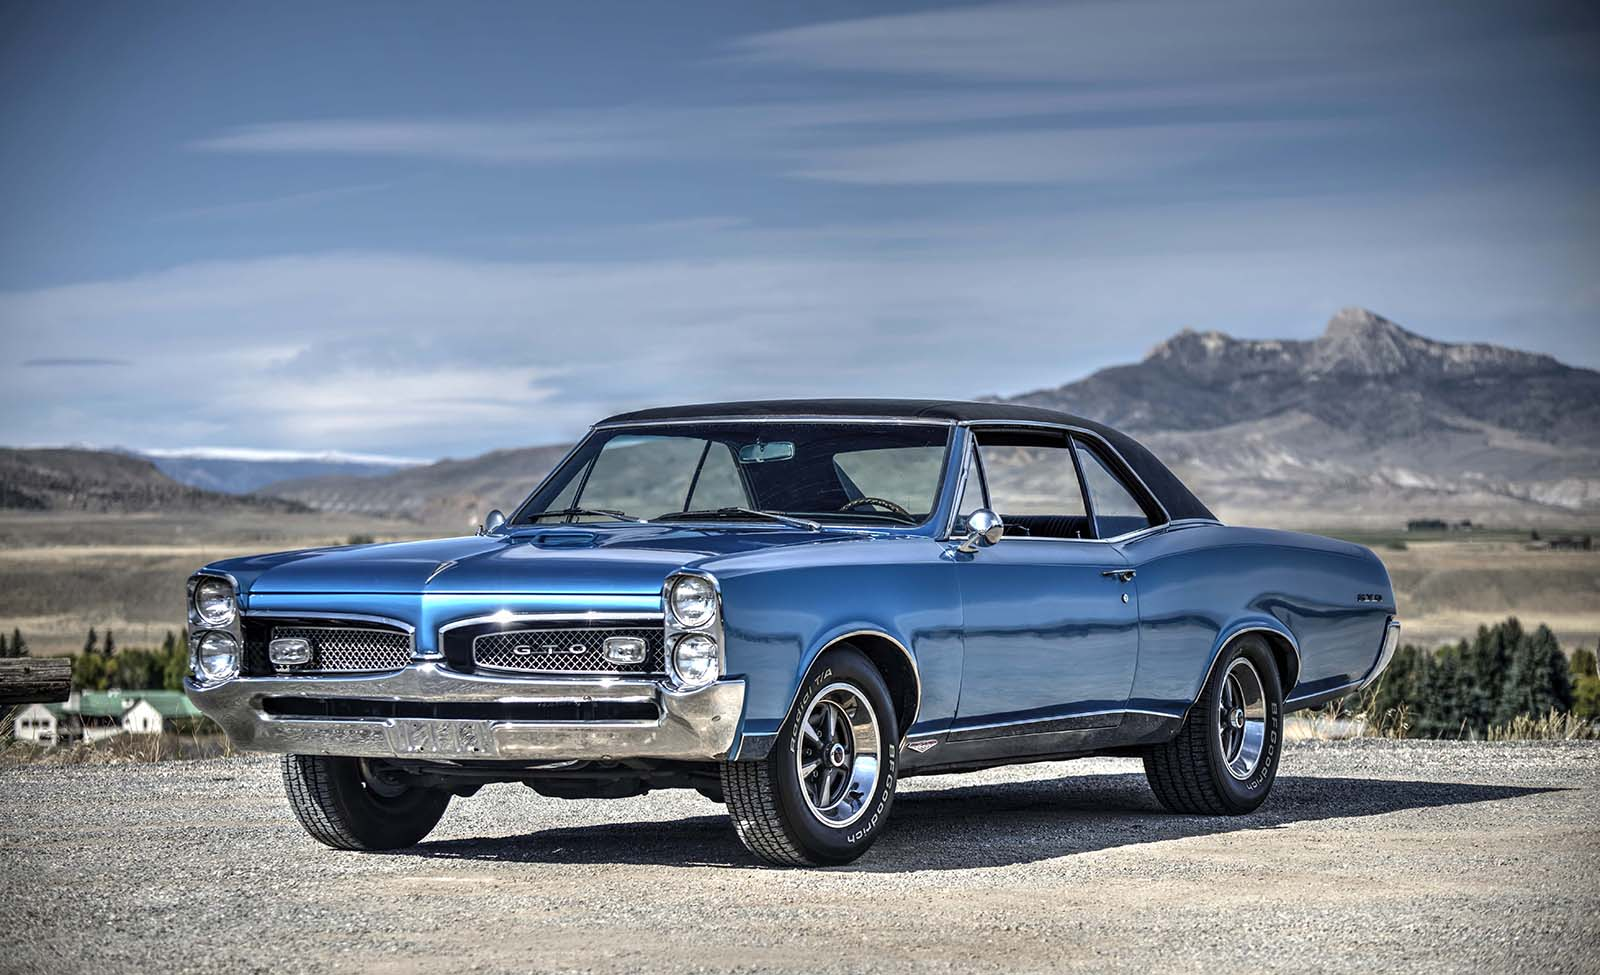 Win this 1967 Pontiac GTO in our raffle. Drawing takes place September 19, 2020. Tickets are on sale now! Photo by Spencer Smith.